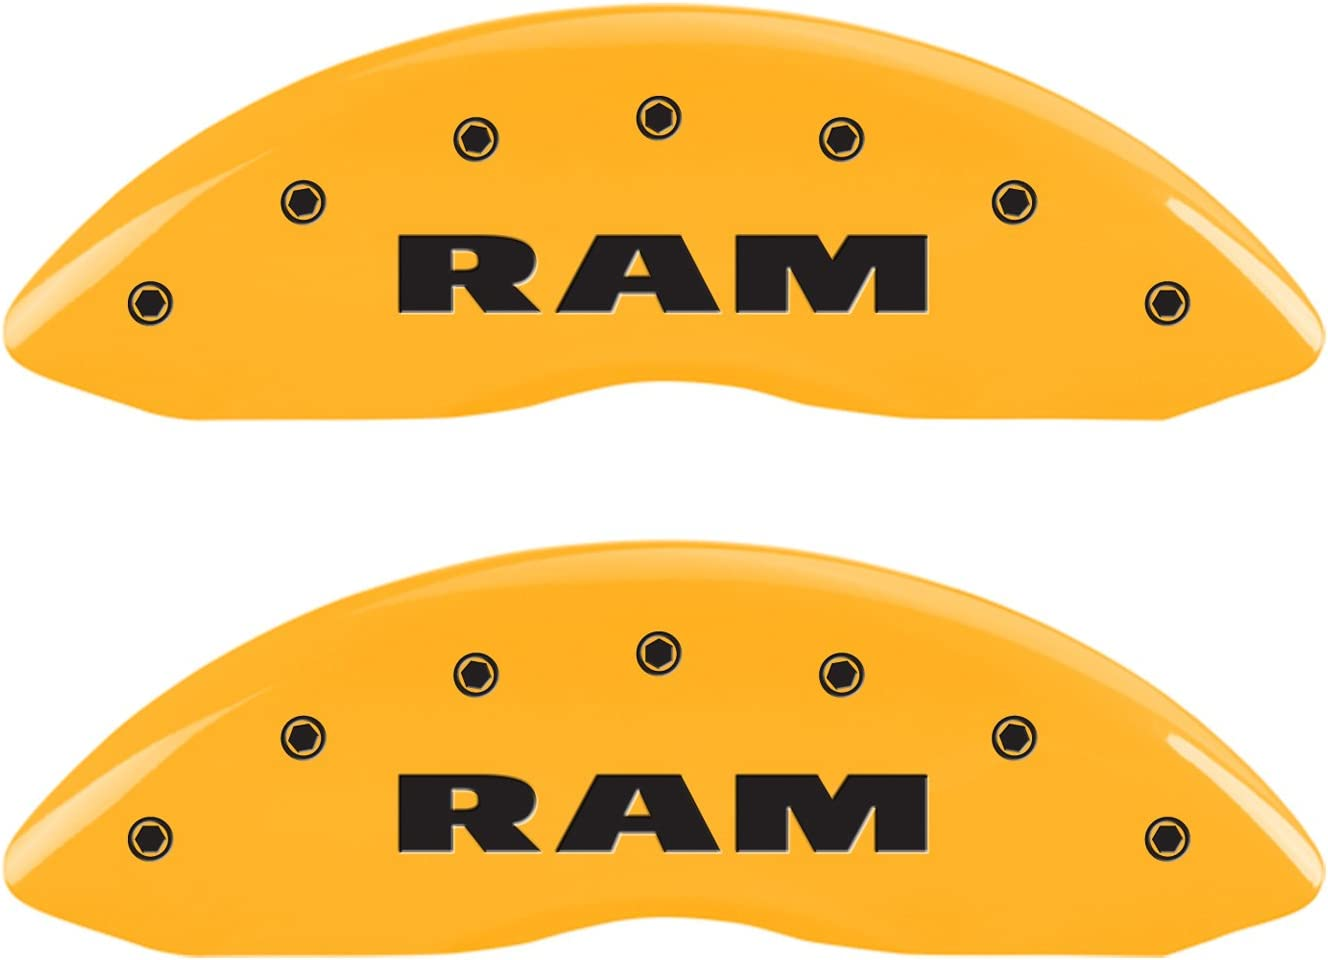 Yellow Engraved Front and Rear: Ram Powder Coat Finish Black Characters Set of 4 MGP Caliper Covers 55001SRAMYL Caliper Cover